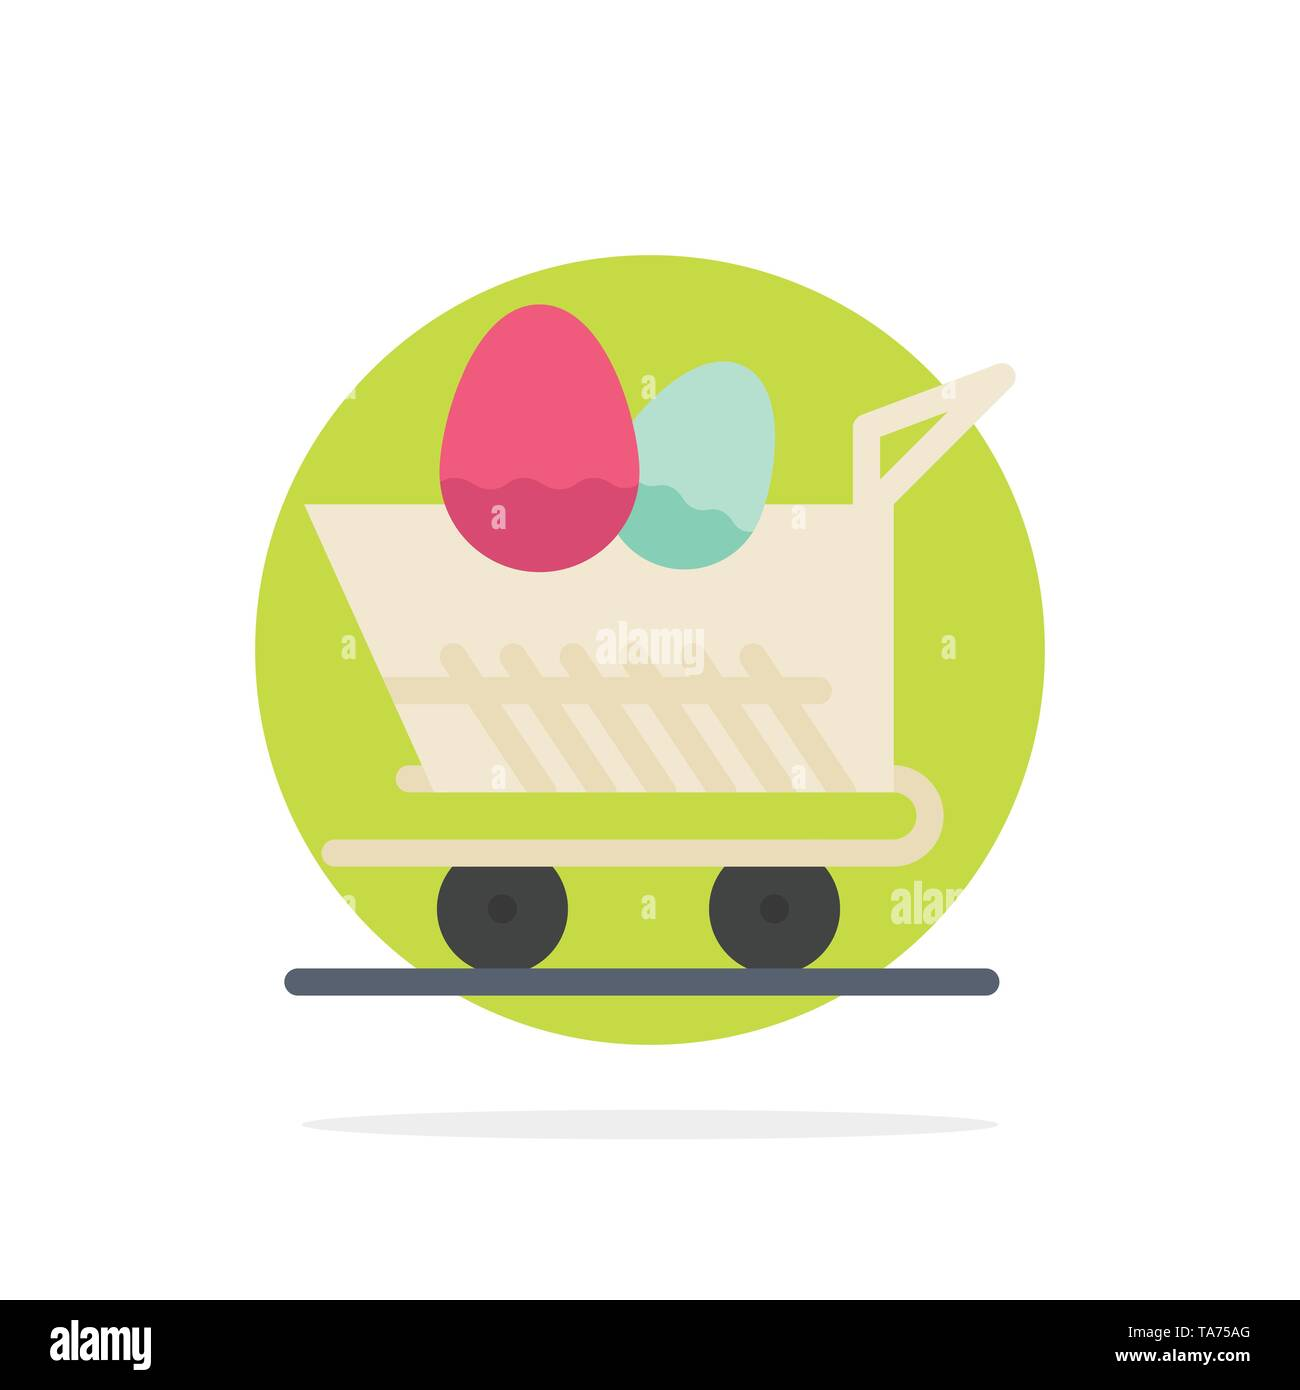 Cart, Trolley, Easter, Shopping Abstract Circle Background Flat color Icon - Stock Image